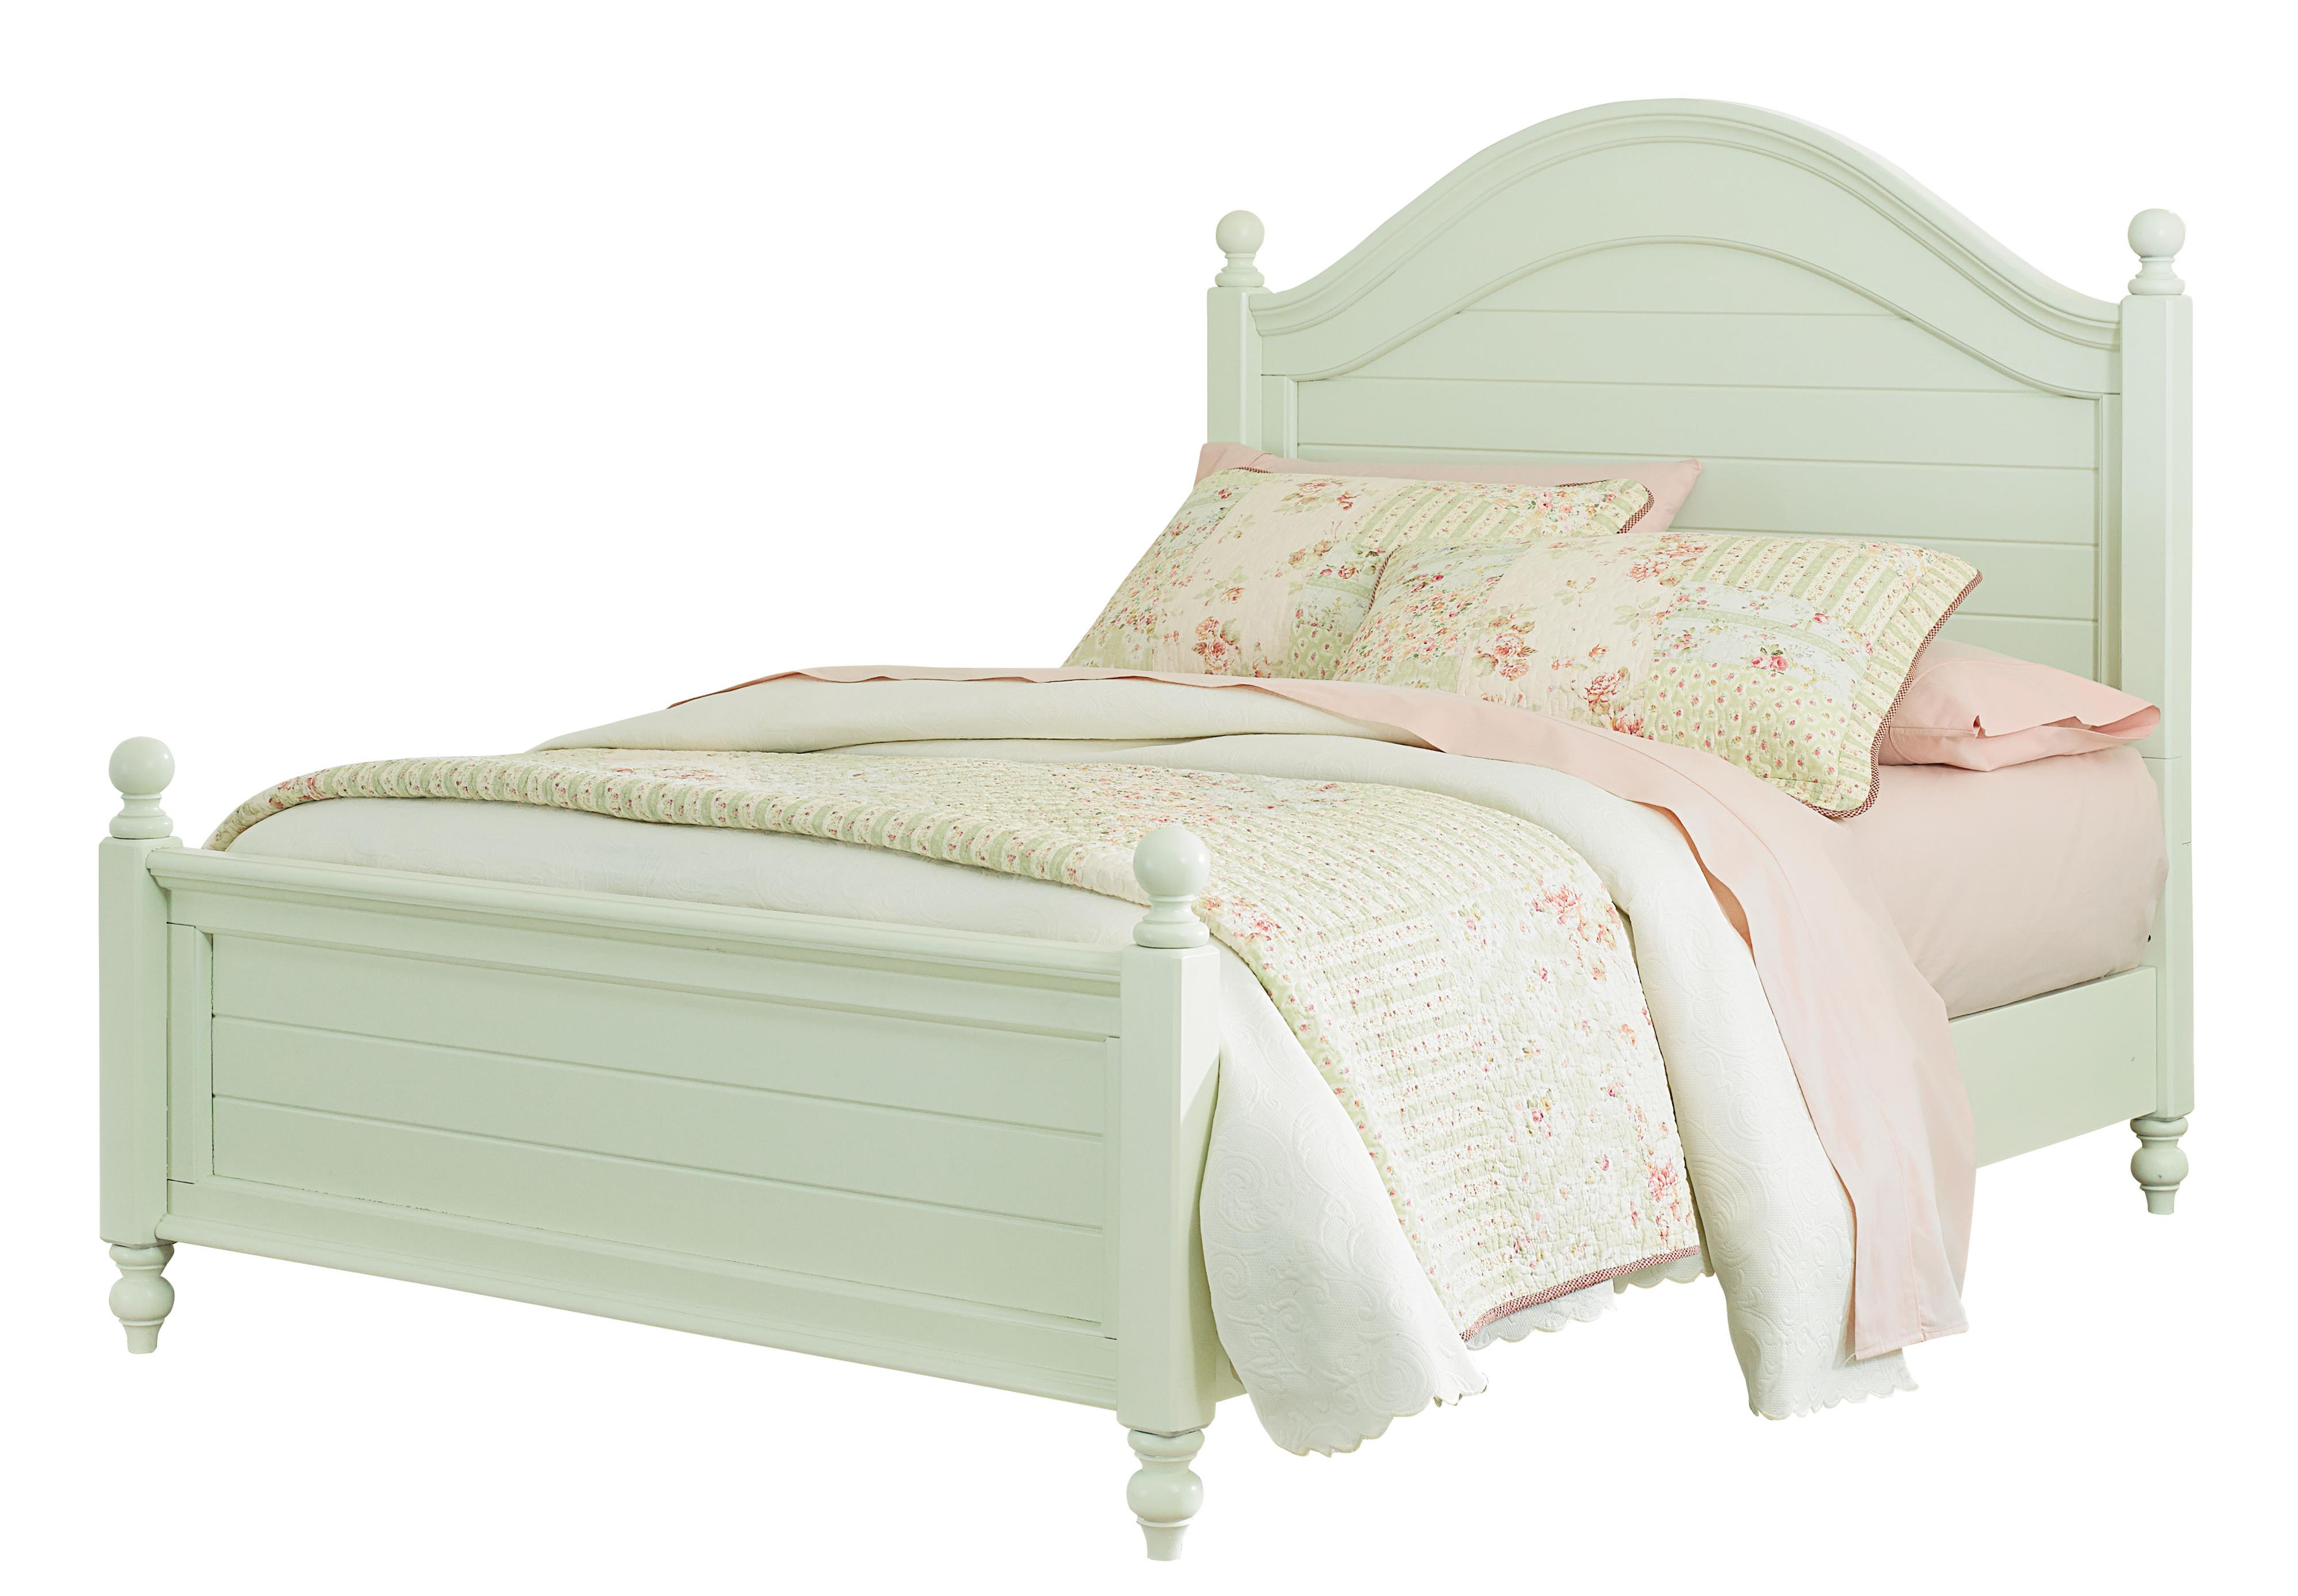 Standard Furniture Camellia Mint Full Bed with Cannonball Bed Posts - Item Number: 95222+24+26